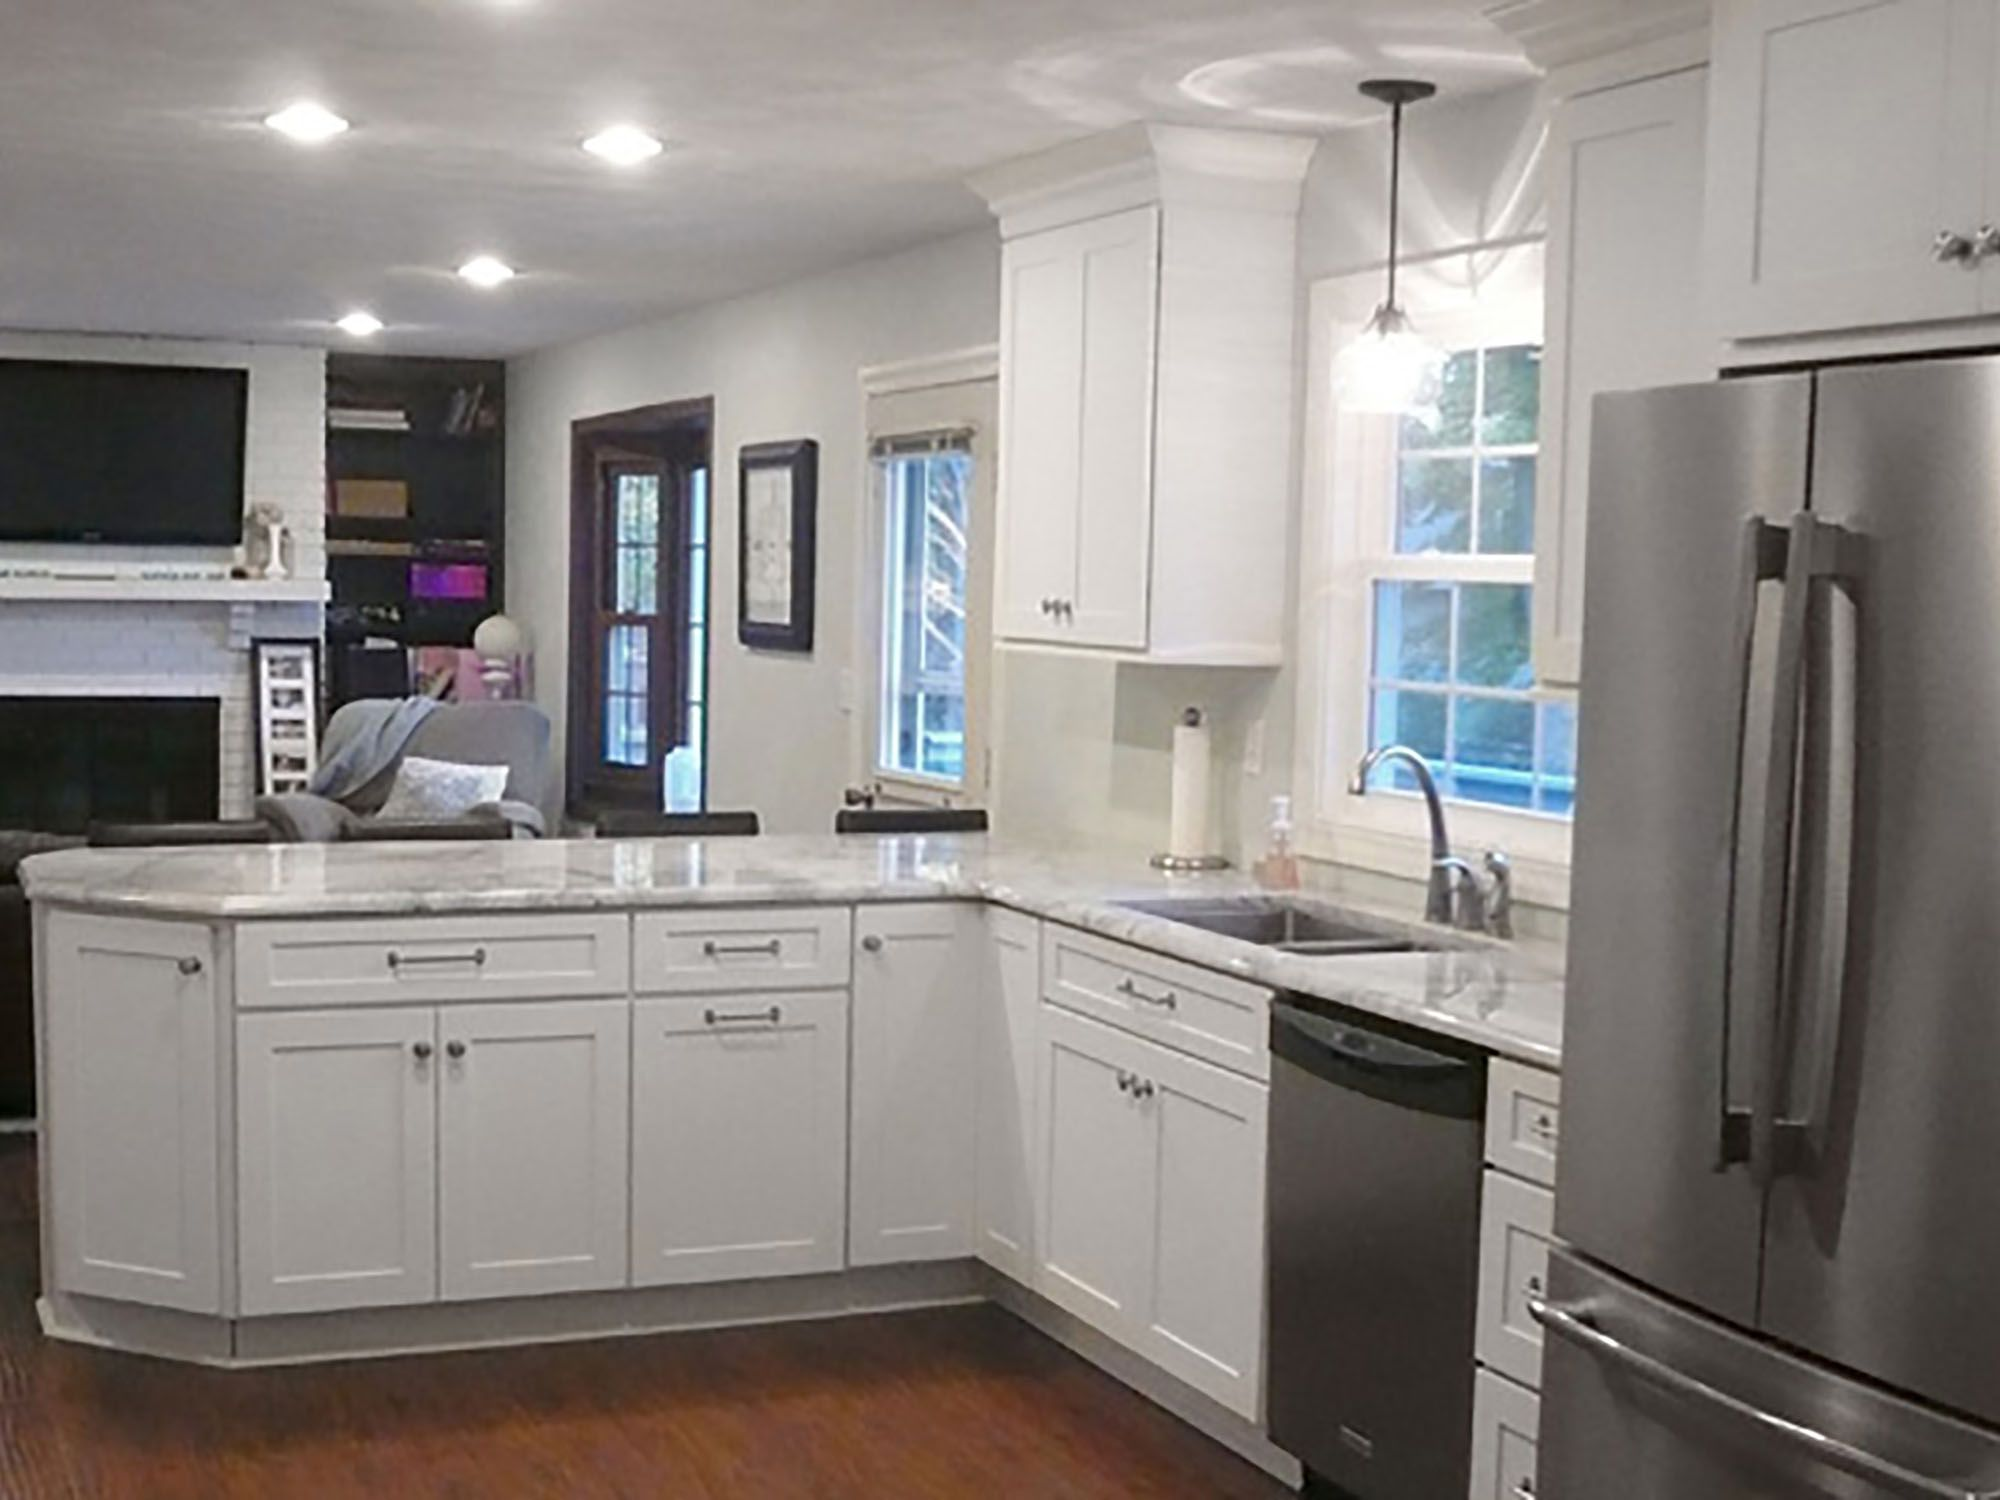 Leesburg Virginia Kitchen Built With Cherry Cabinets In A Traditional Raised Panel Style With Layered Crown Mold Kitchen Layout Kitchen Remodel Custom Kitchens